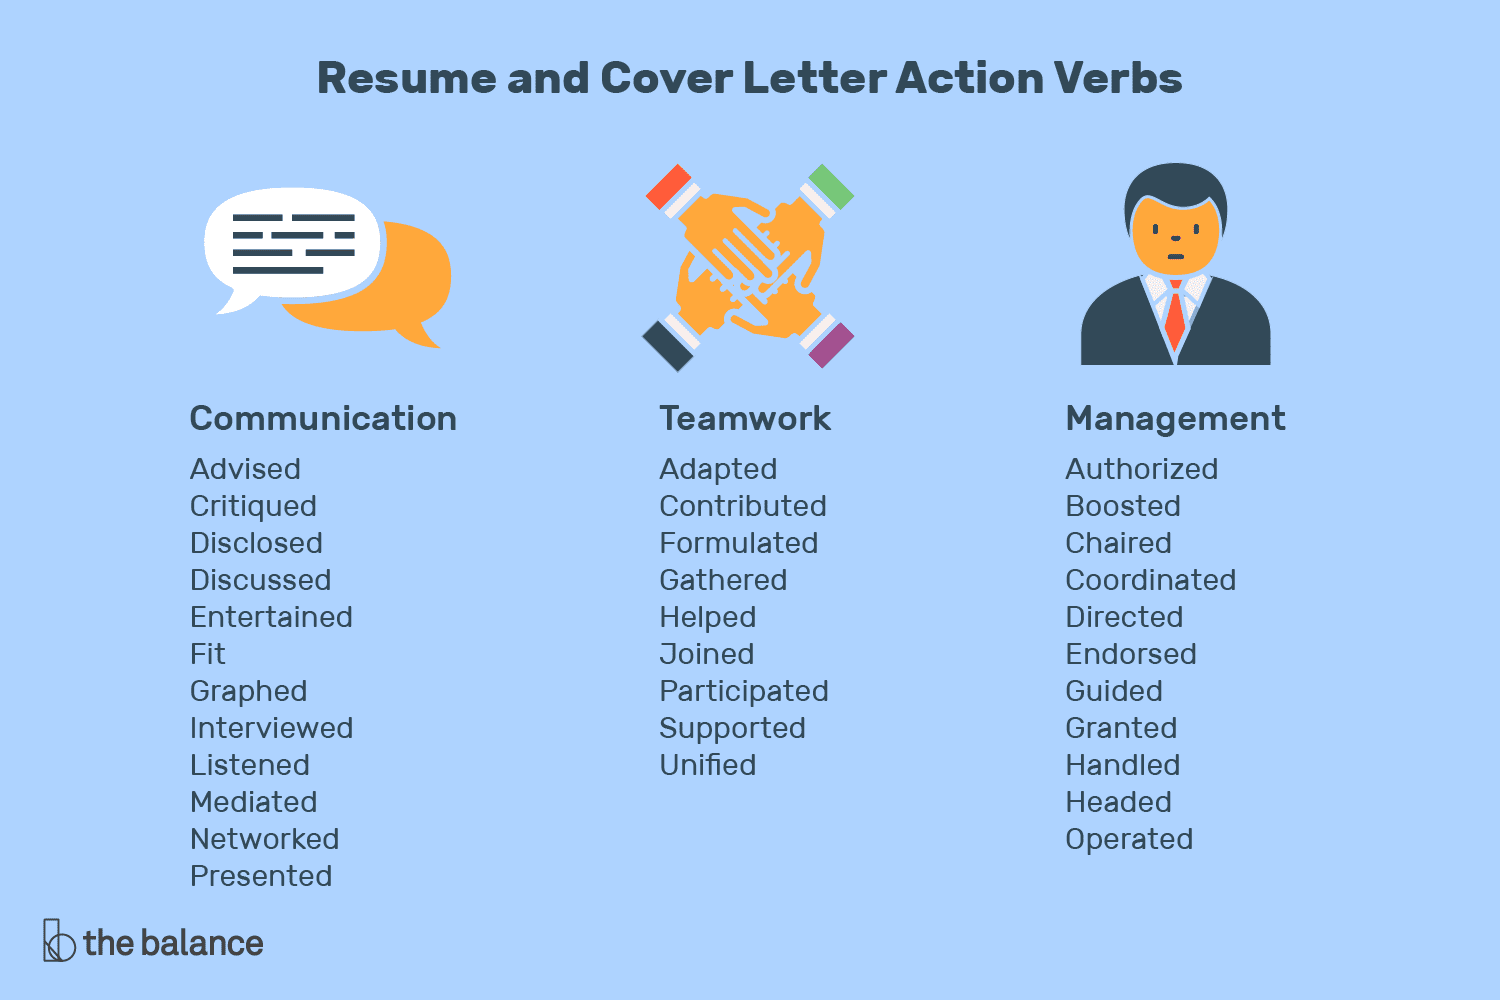 resume and cover letter action verbs